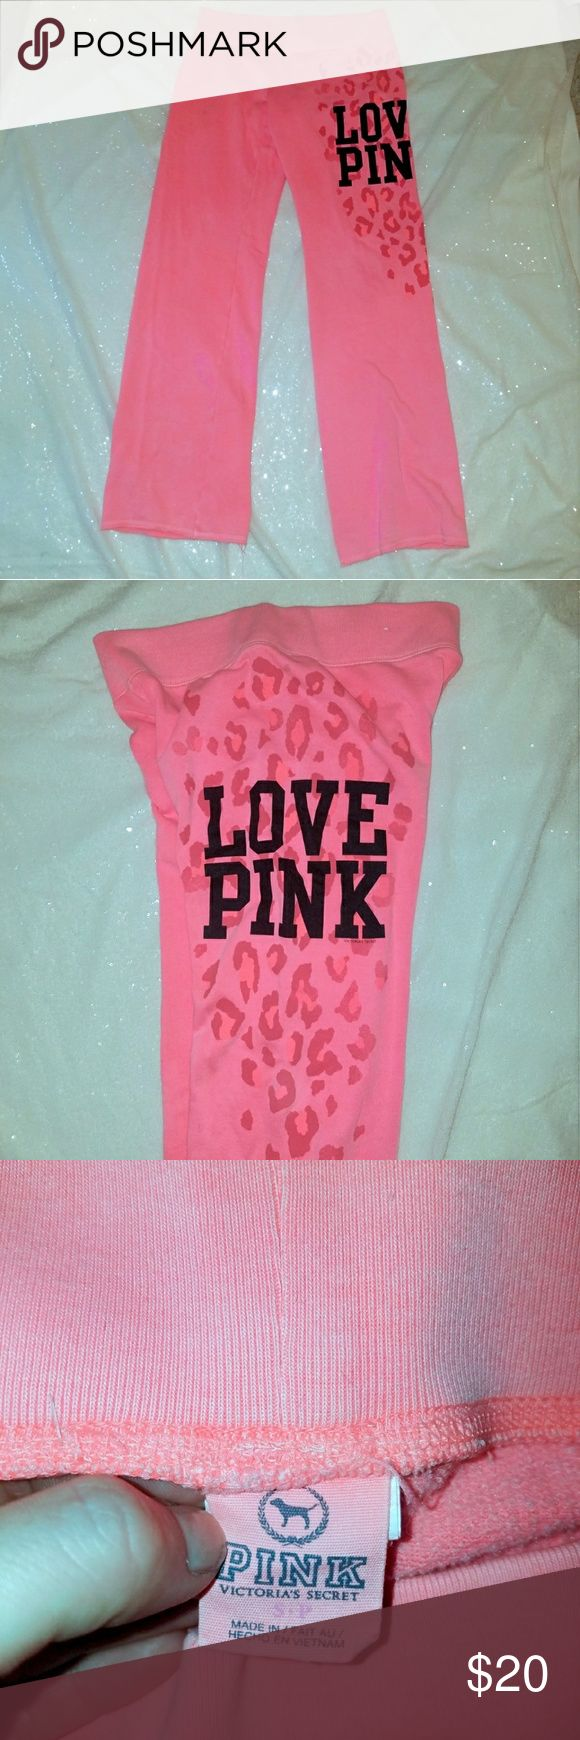 VS PINK  Yoga pant NWOT soft and comfy pink yoga pant PINK Victoria's Secret Pants